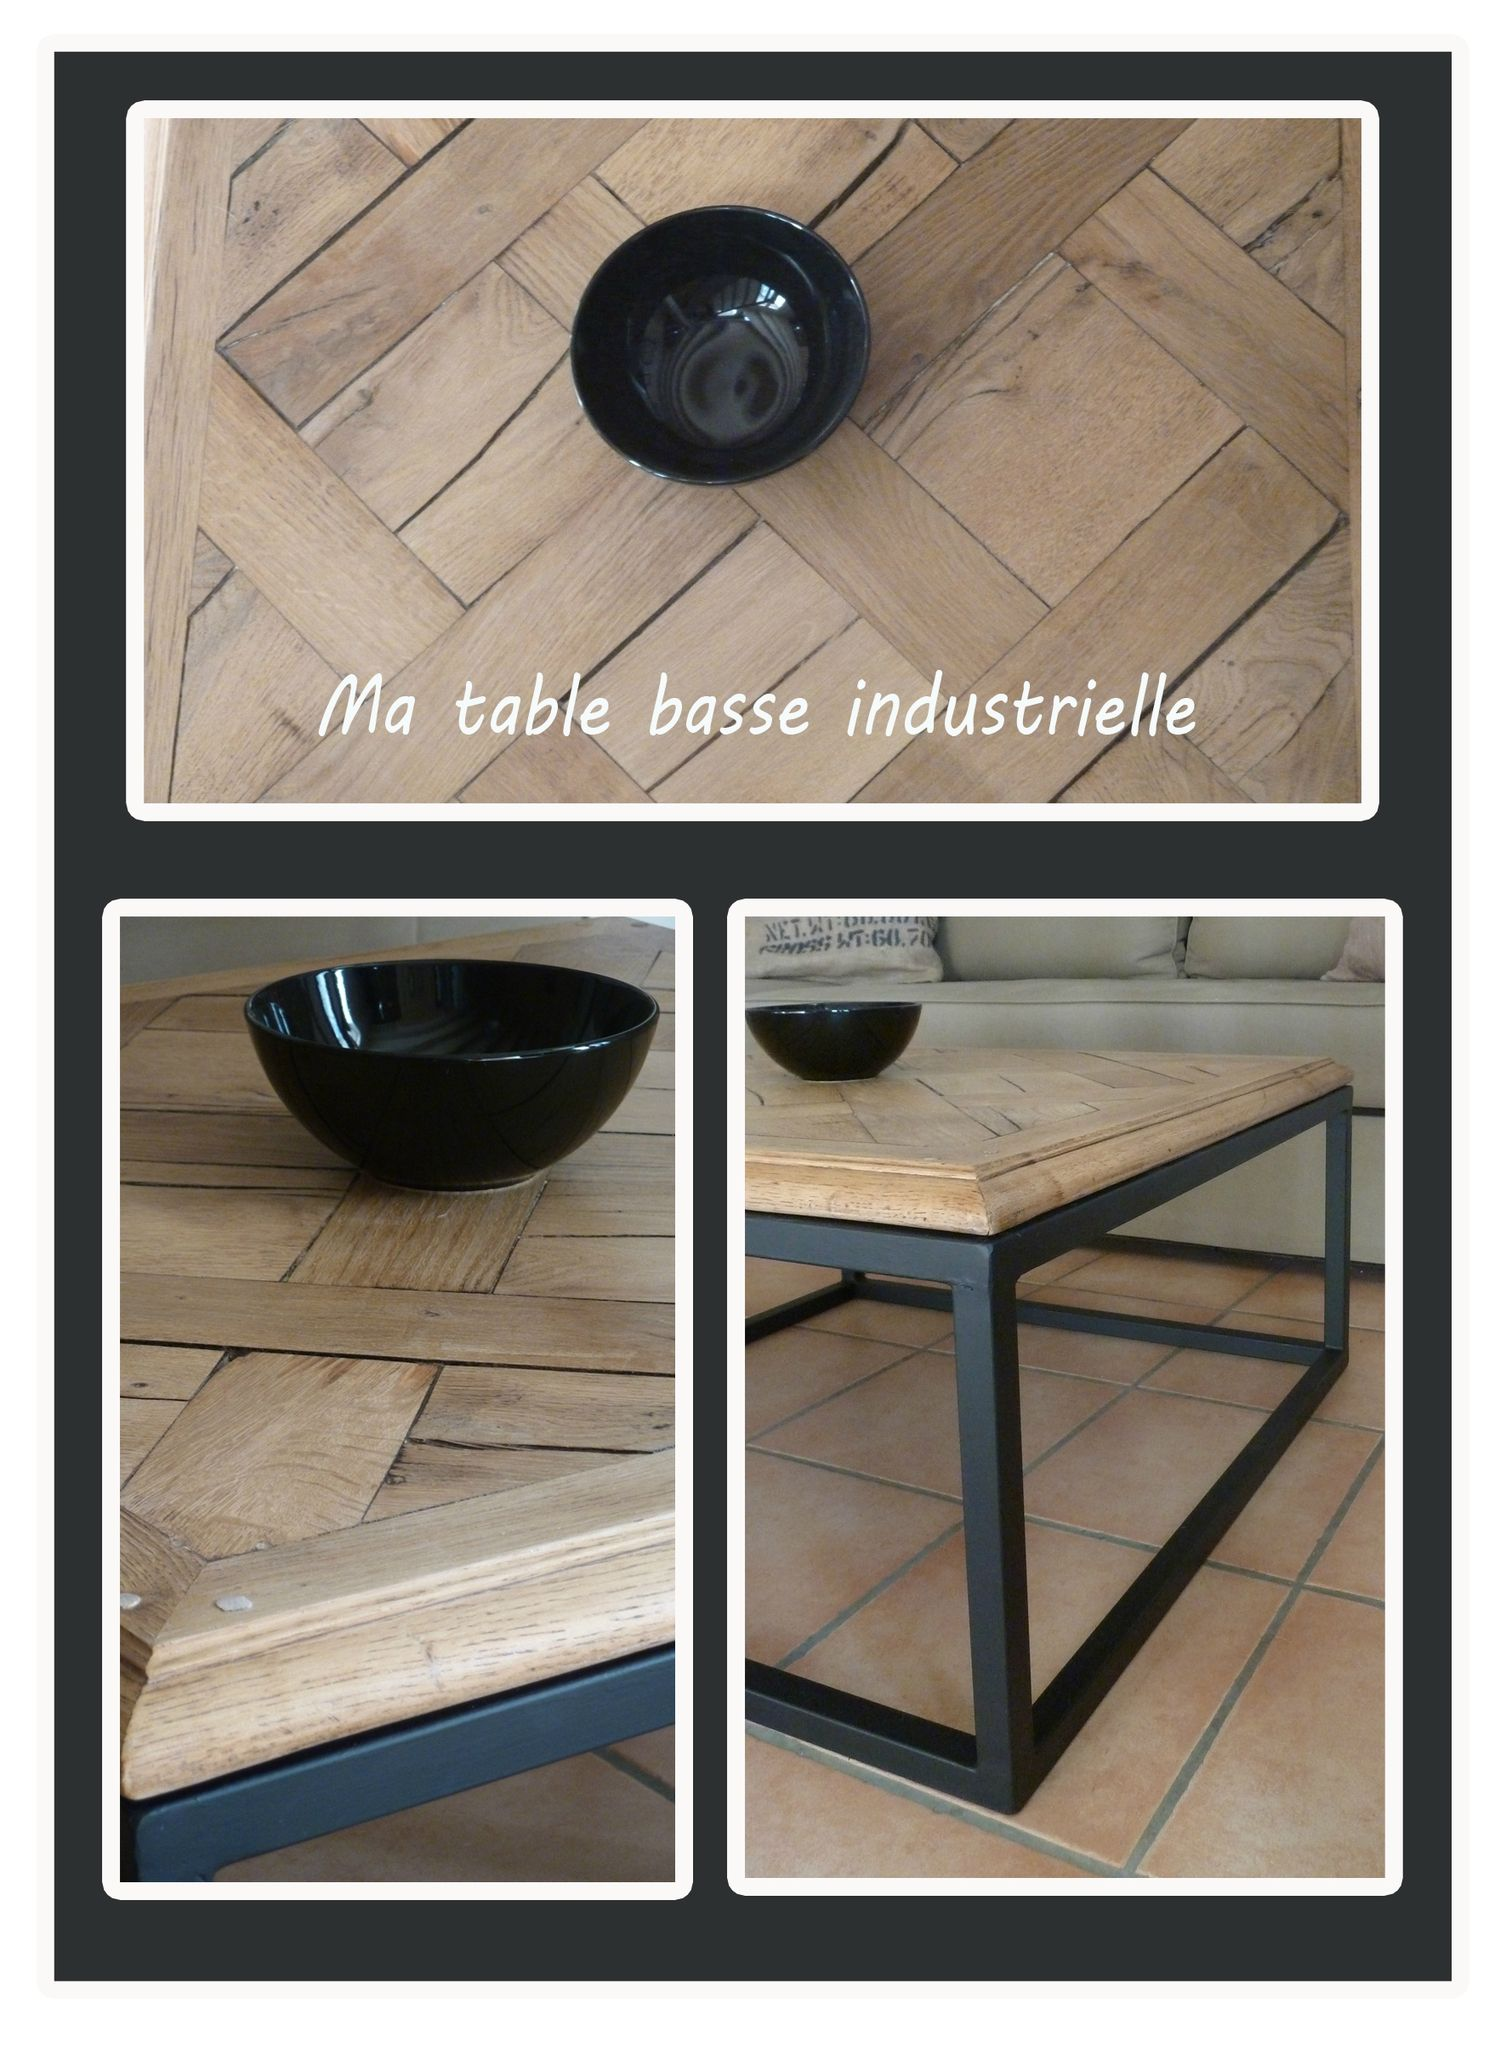 Ma table basse industrielle au 42 home - Table basse industrielle la redoute ...